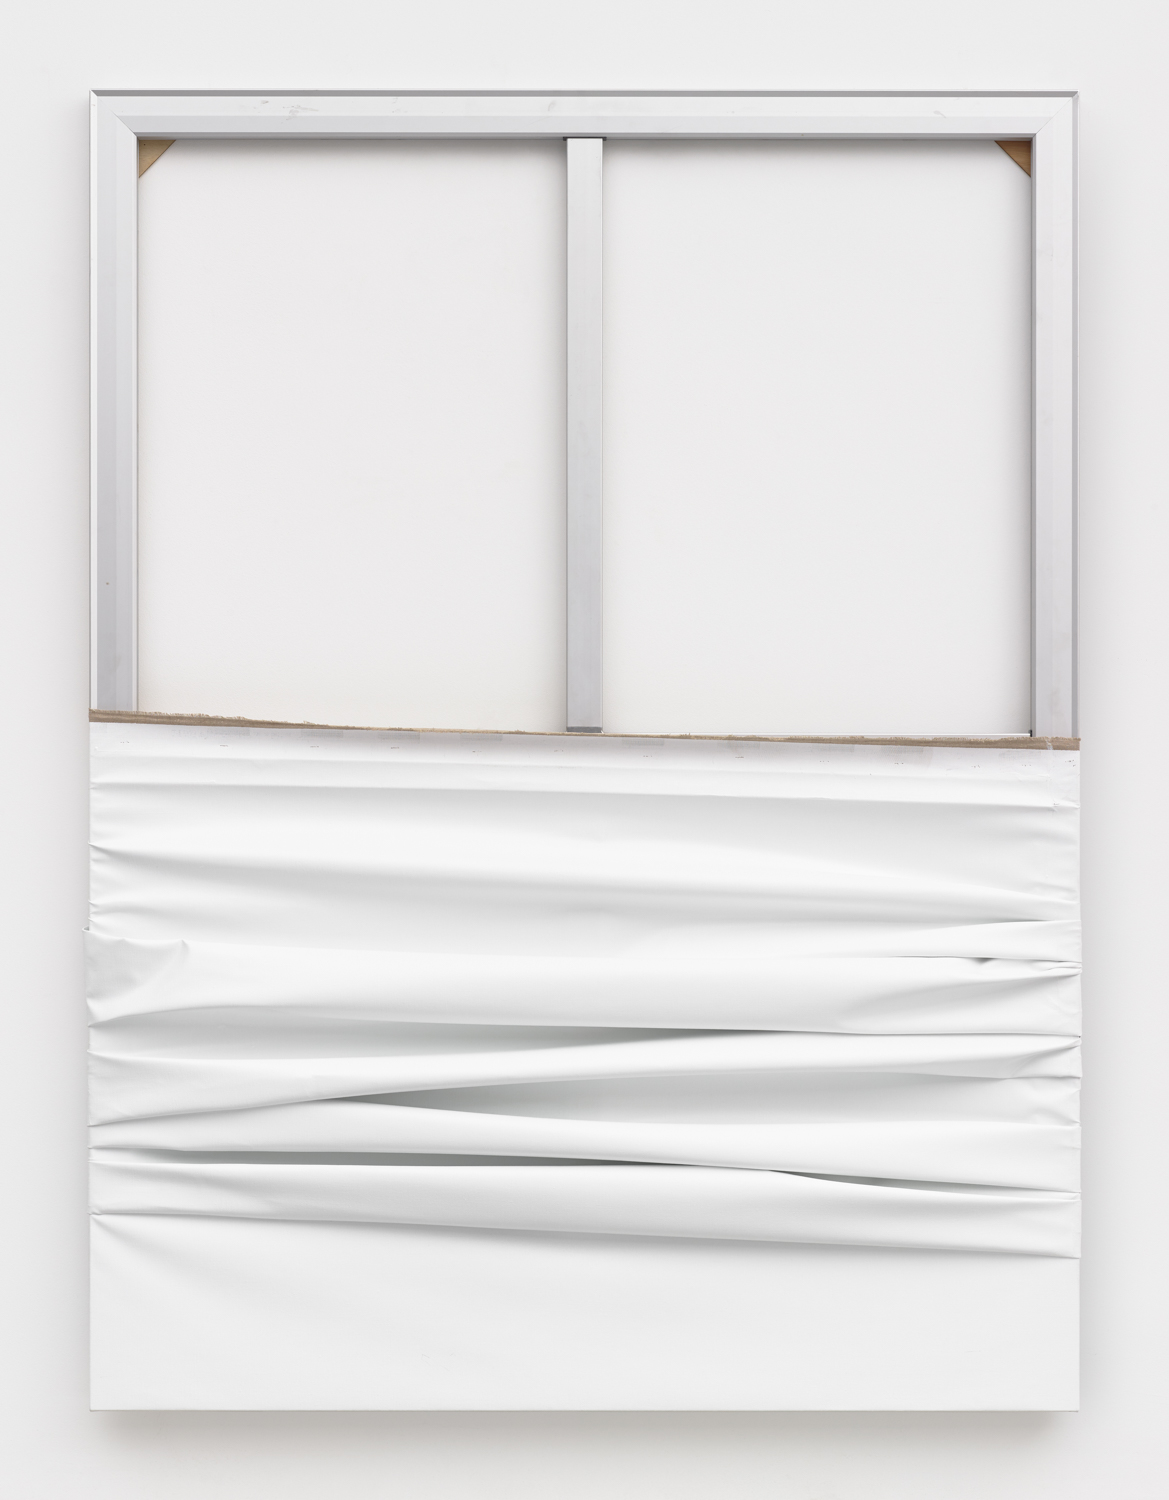 Object, 2018 oil on linen and aluminium 72 x 54 in / 182,9 x 137,2 cm